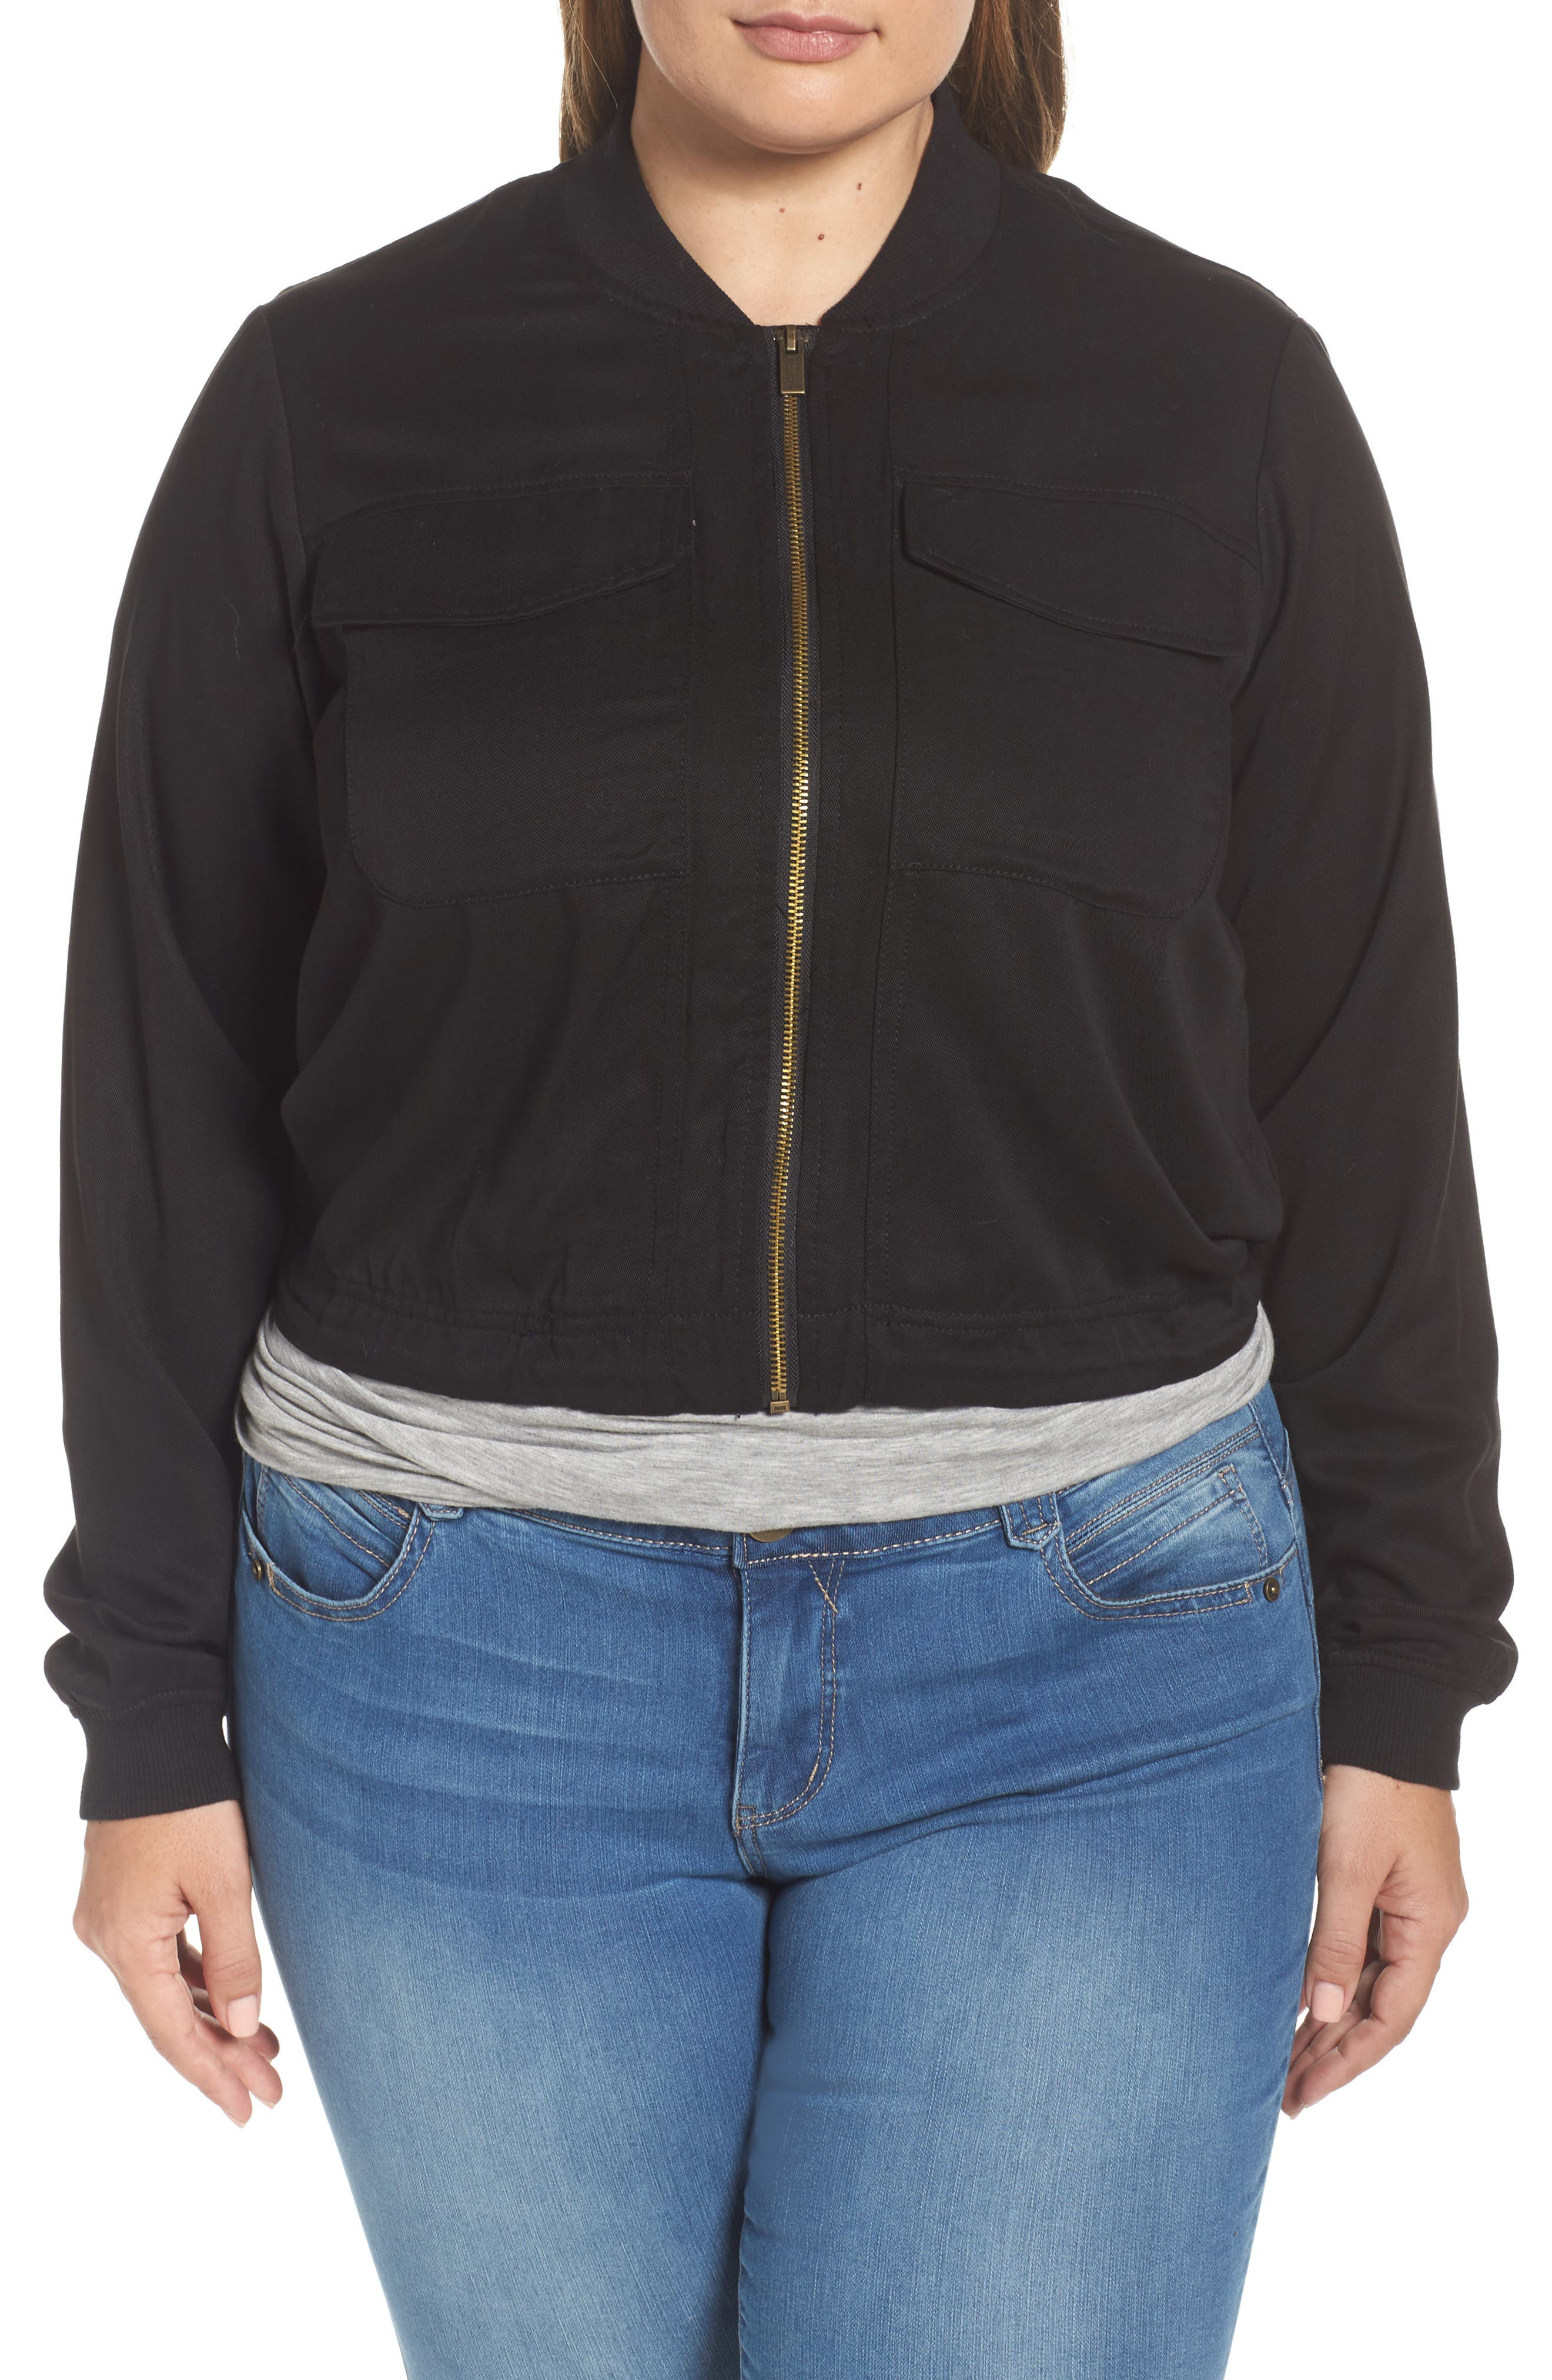 Alternate Image 1 Selected - RACHEL Rachel Roy Drawstring Hem Bomber Jacket (Plus Size)